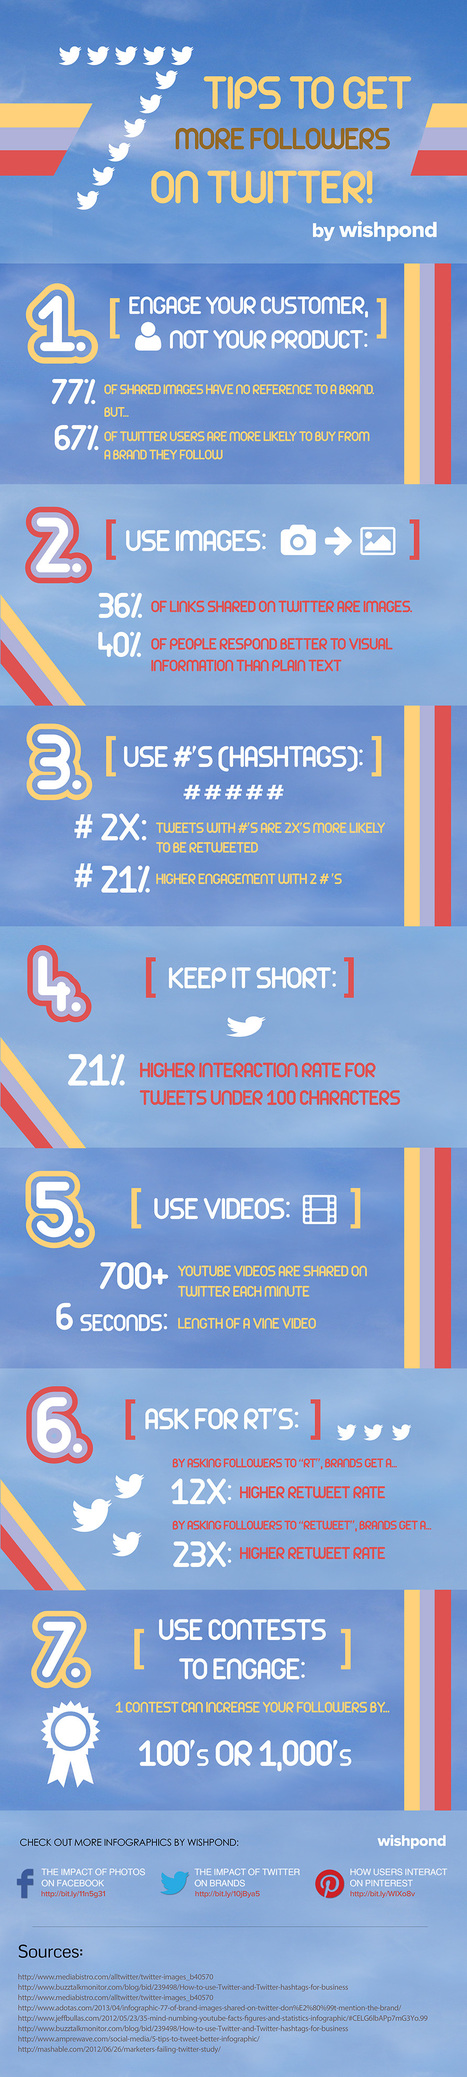 Infographic: 36% of all shared links on Twitter are photos | Ken's Odds & Ends | Scoop.it